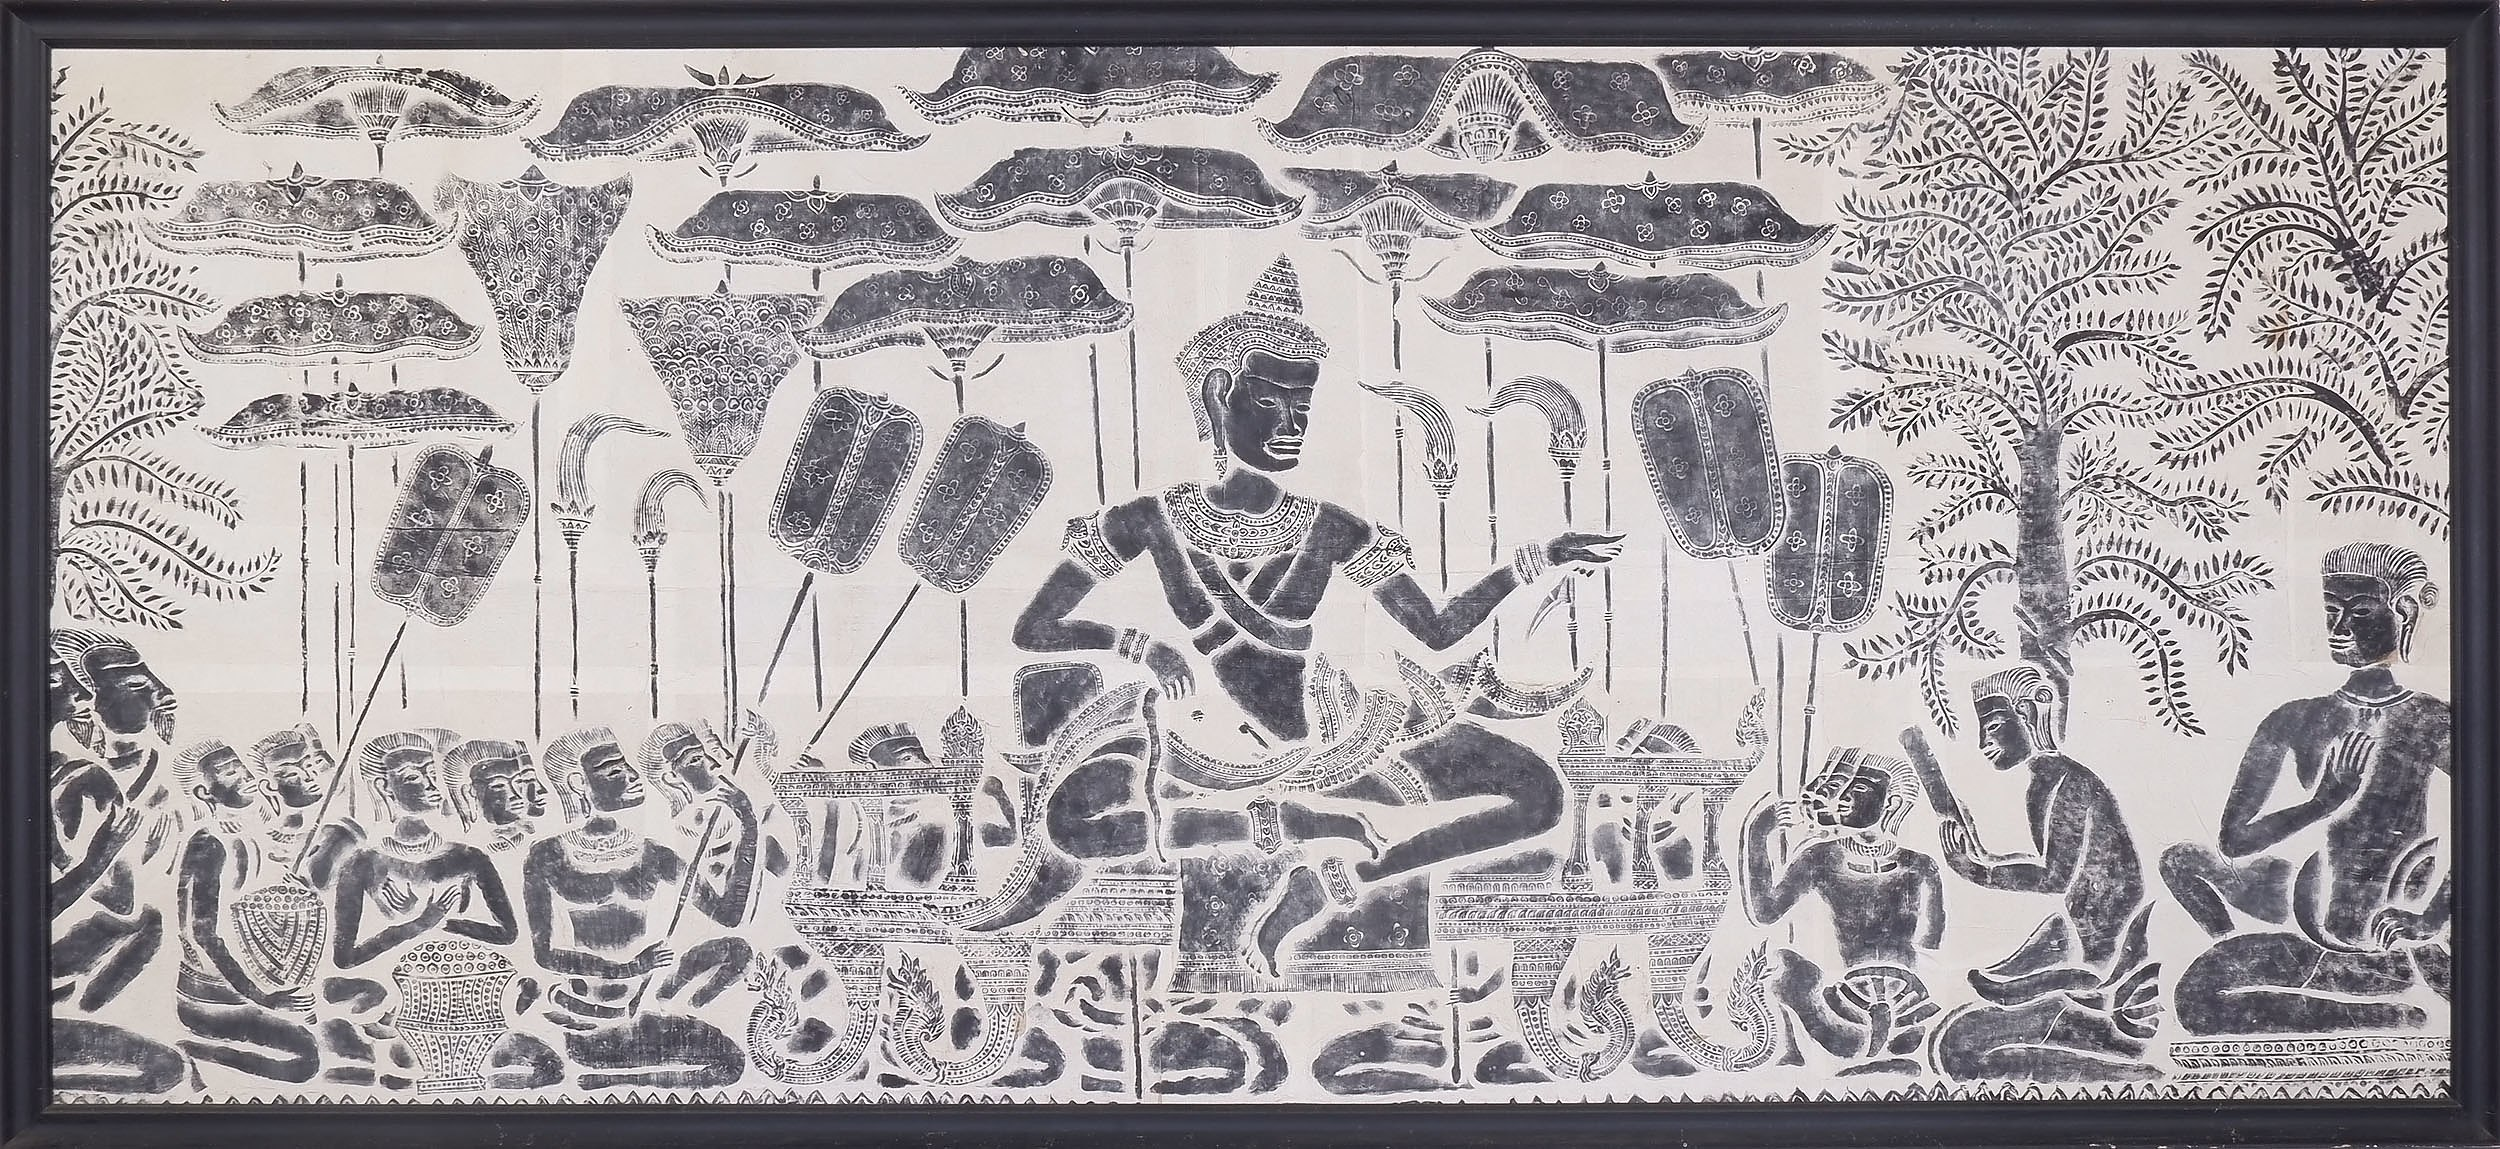 'Large Framed Rubbing of Angkor Watt Made by the Monks of Ankor Watt 1967'